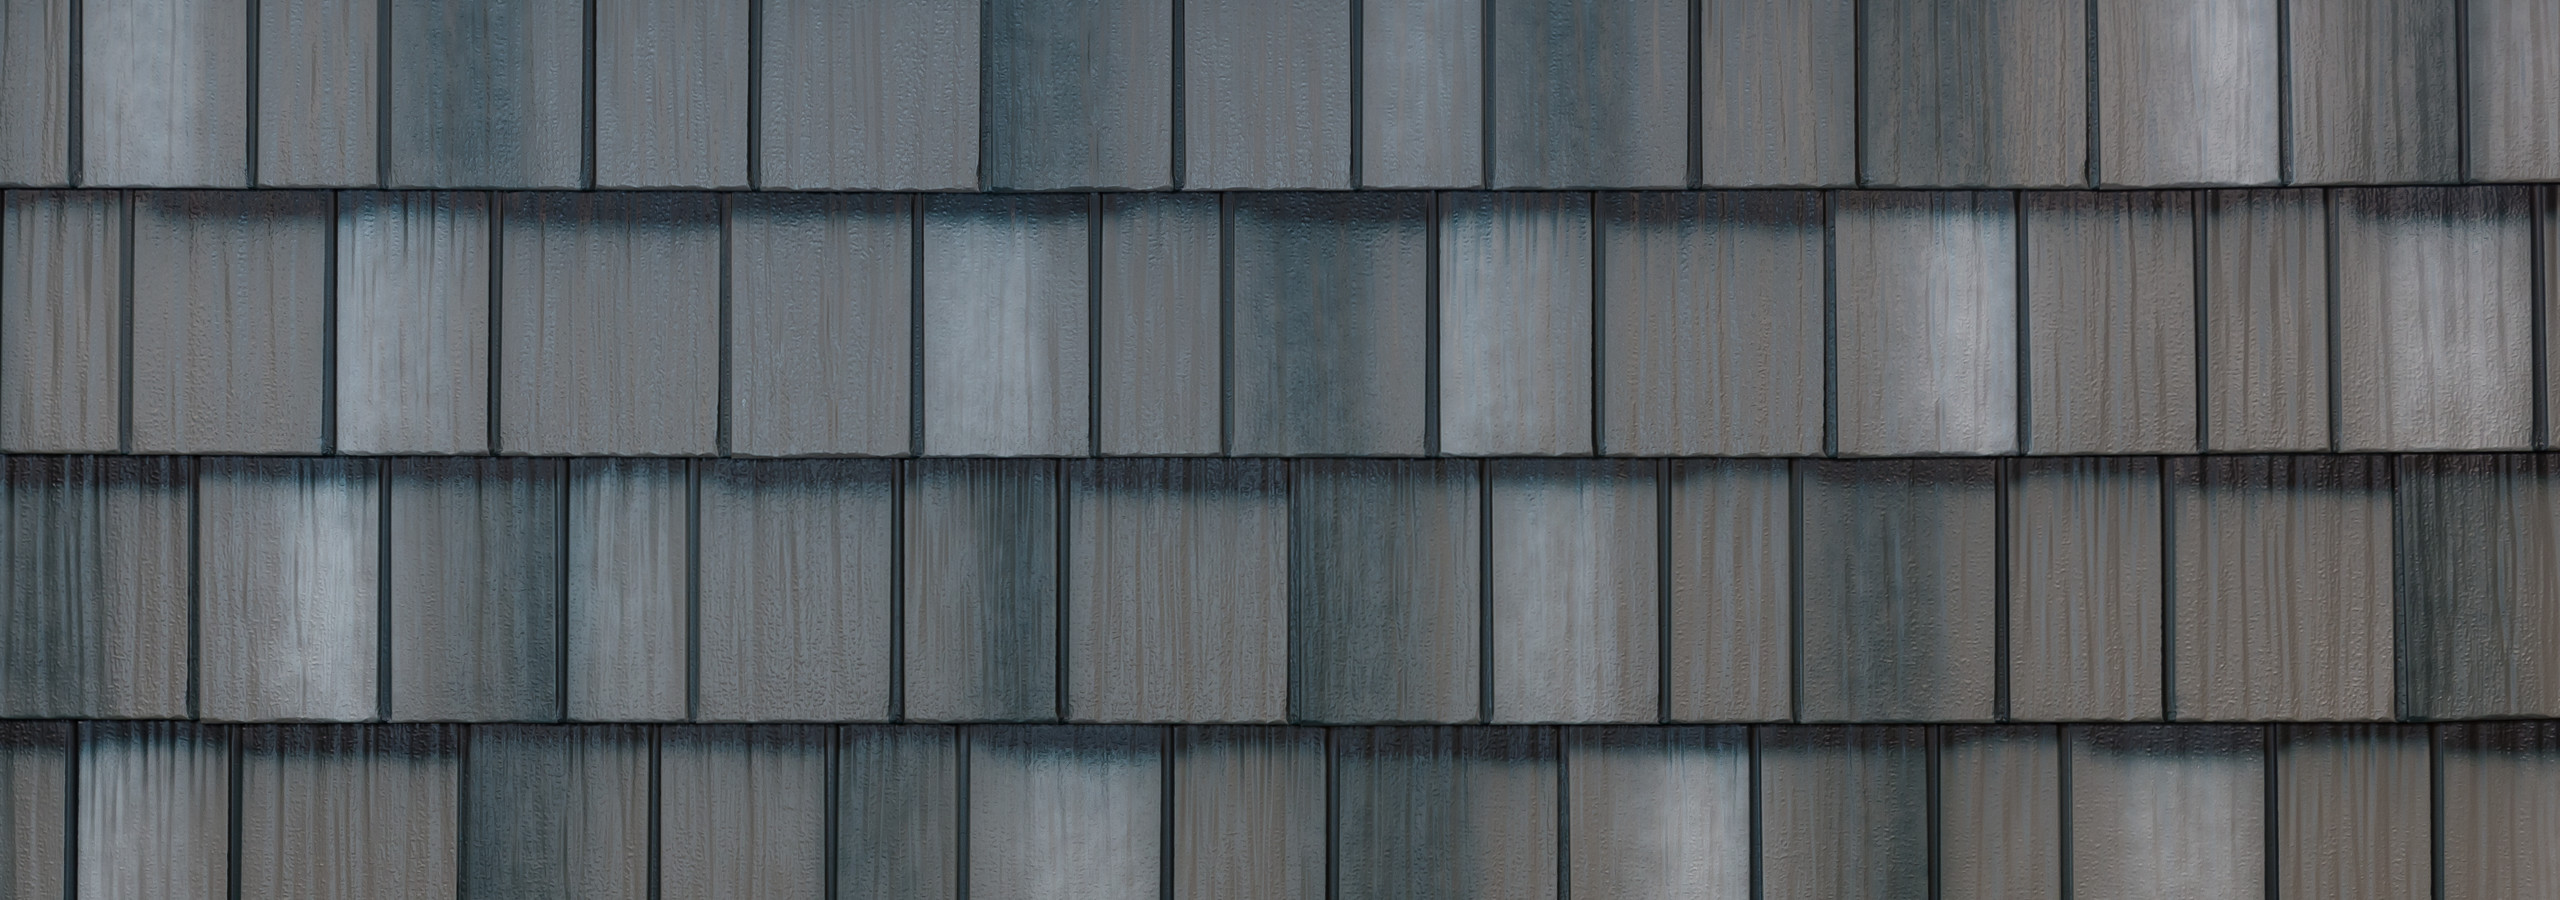 Charcoal gray/grey blend steel shake roofing